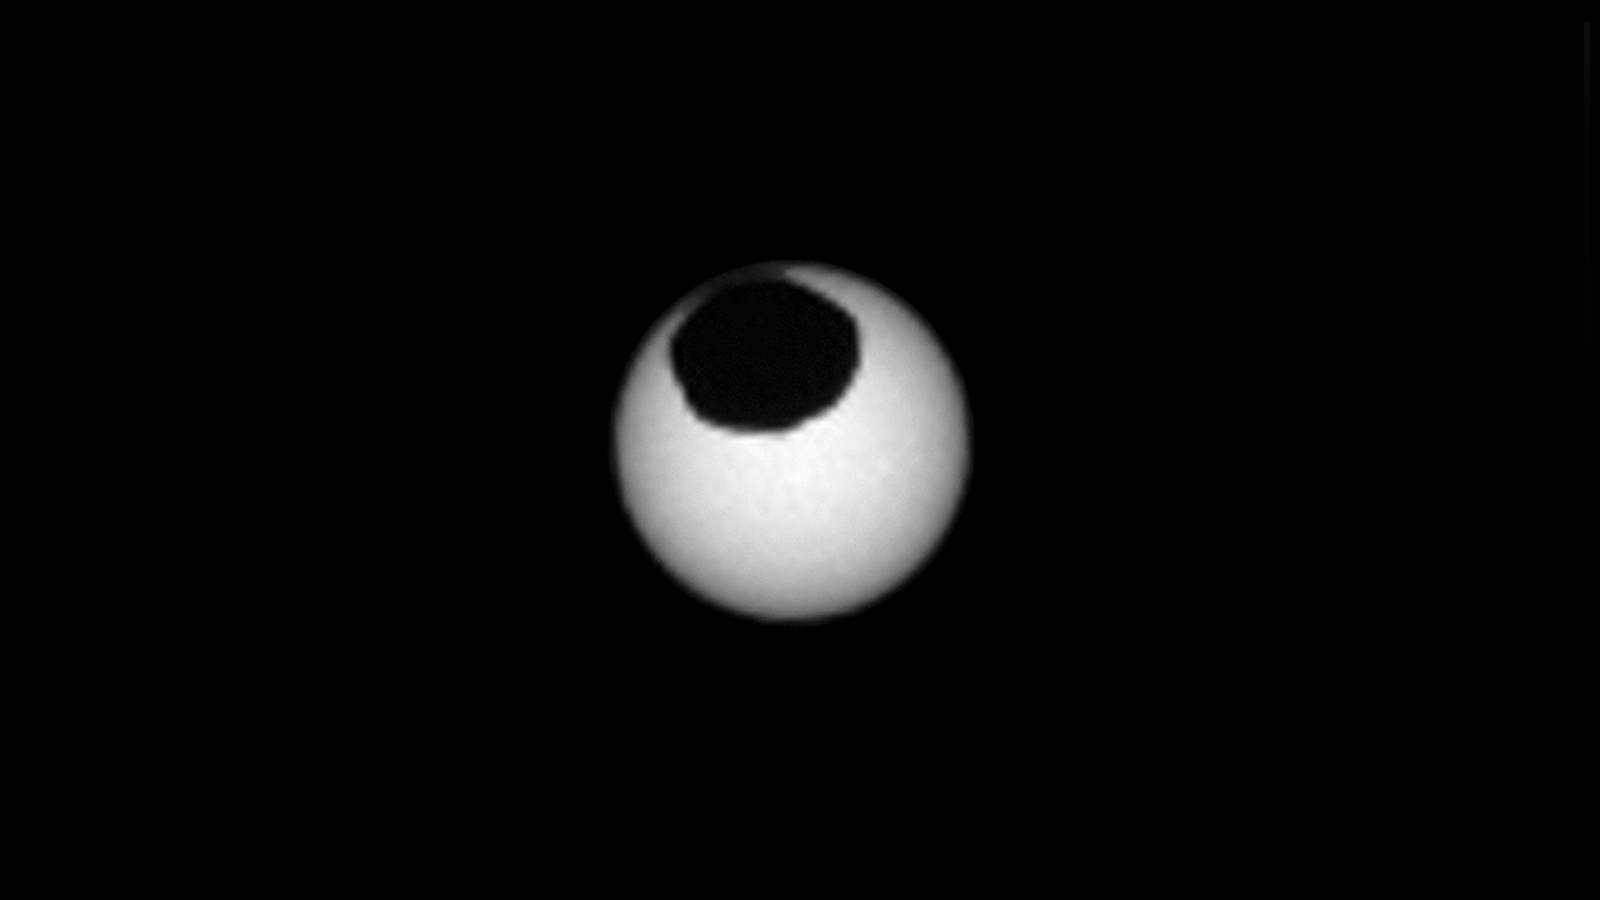 NASA's Curiosity rover captured a strange sight of two solar eclipses on Mars